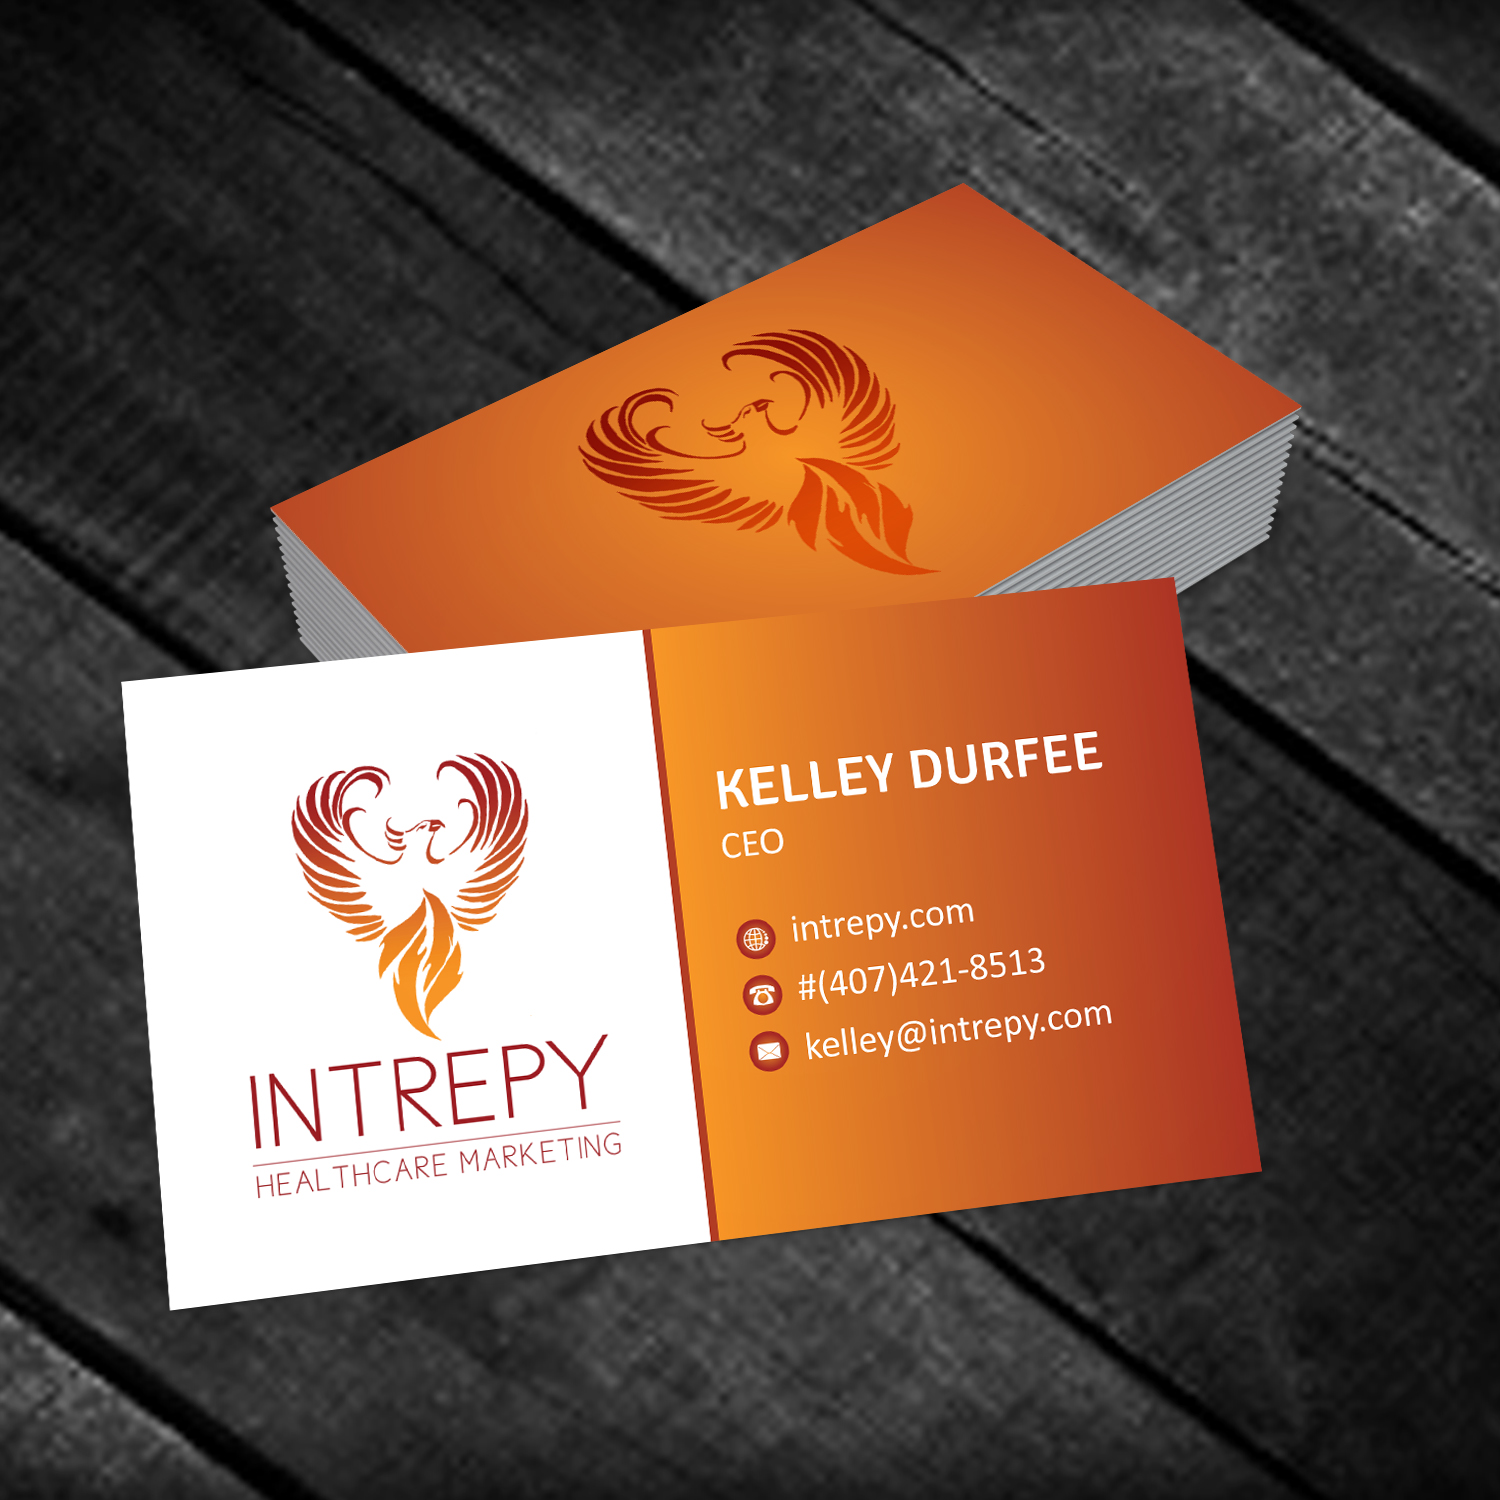 Colorful bold marketing business card design for intrepy business card design by creative jiniya for intrepy healthcare marketing design 12093786 colourmoves